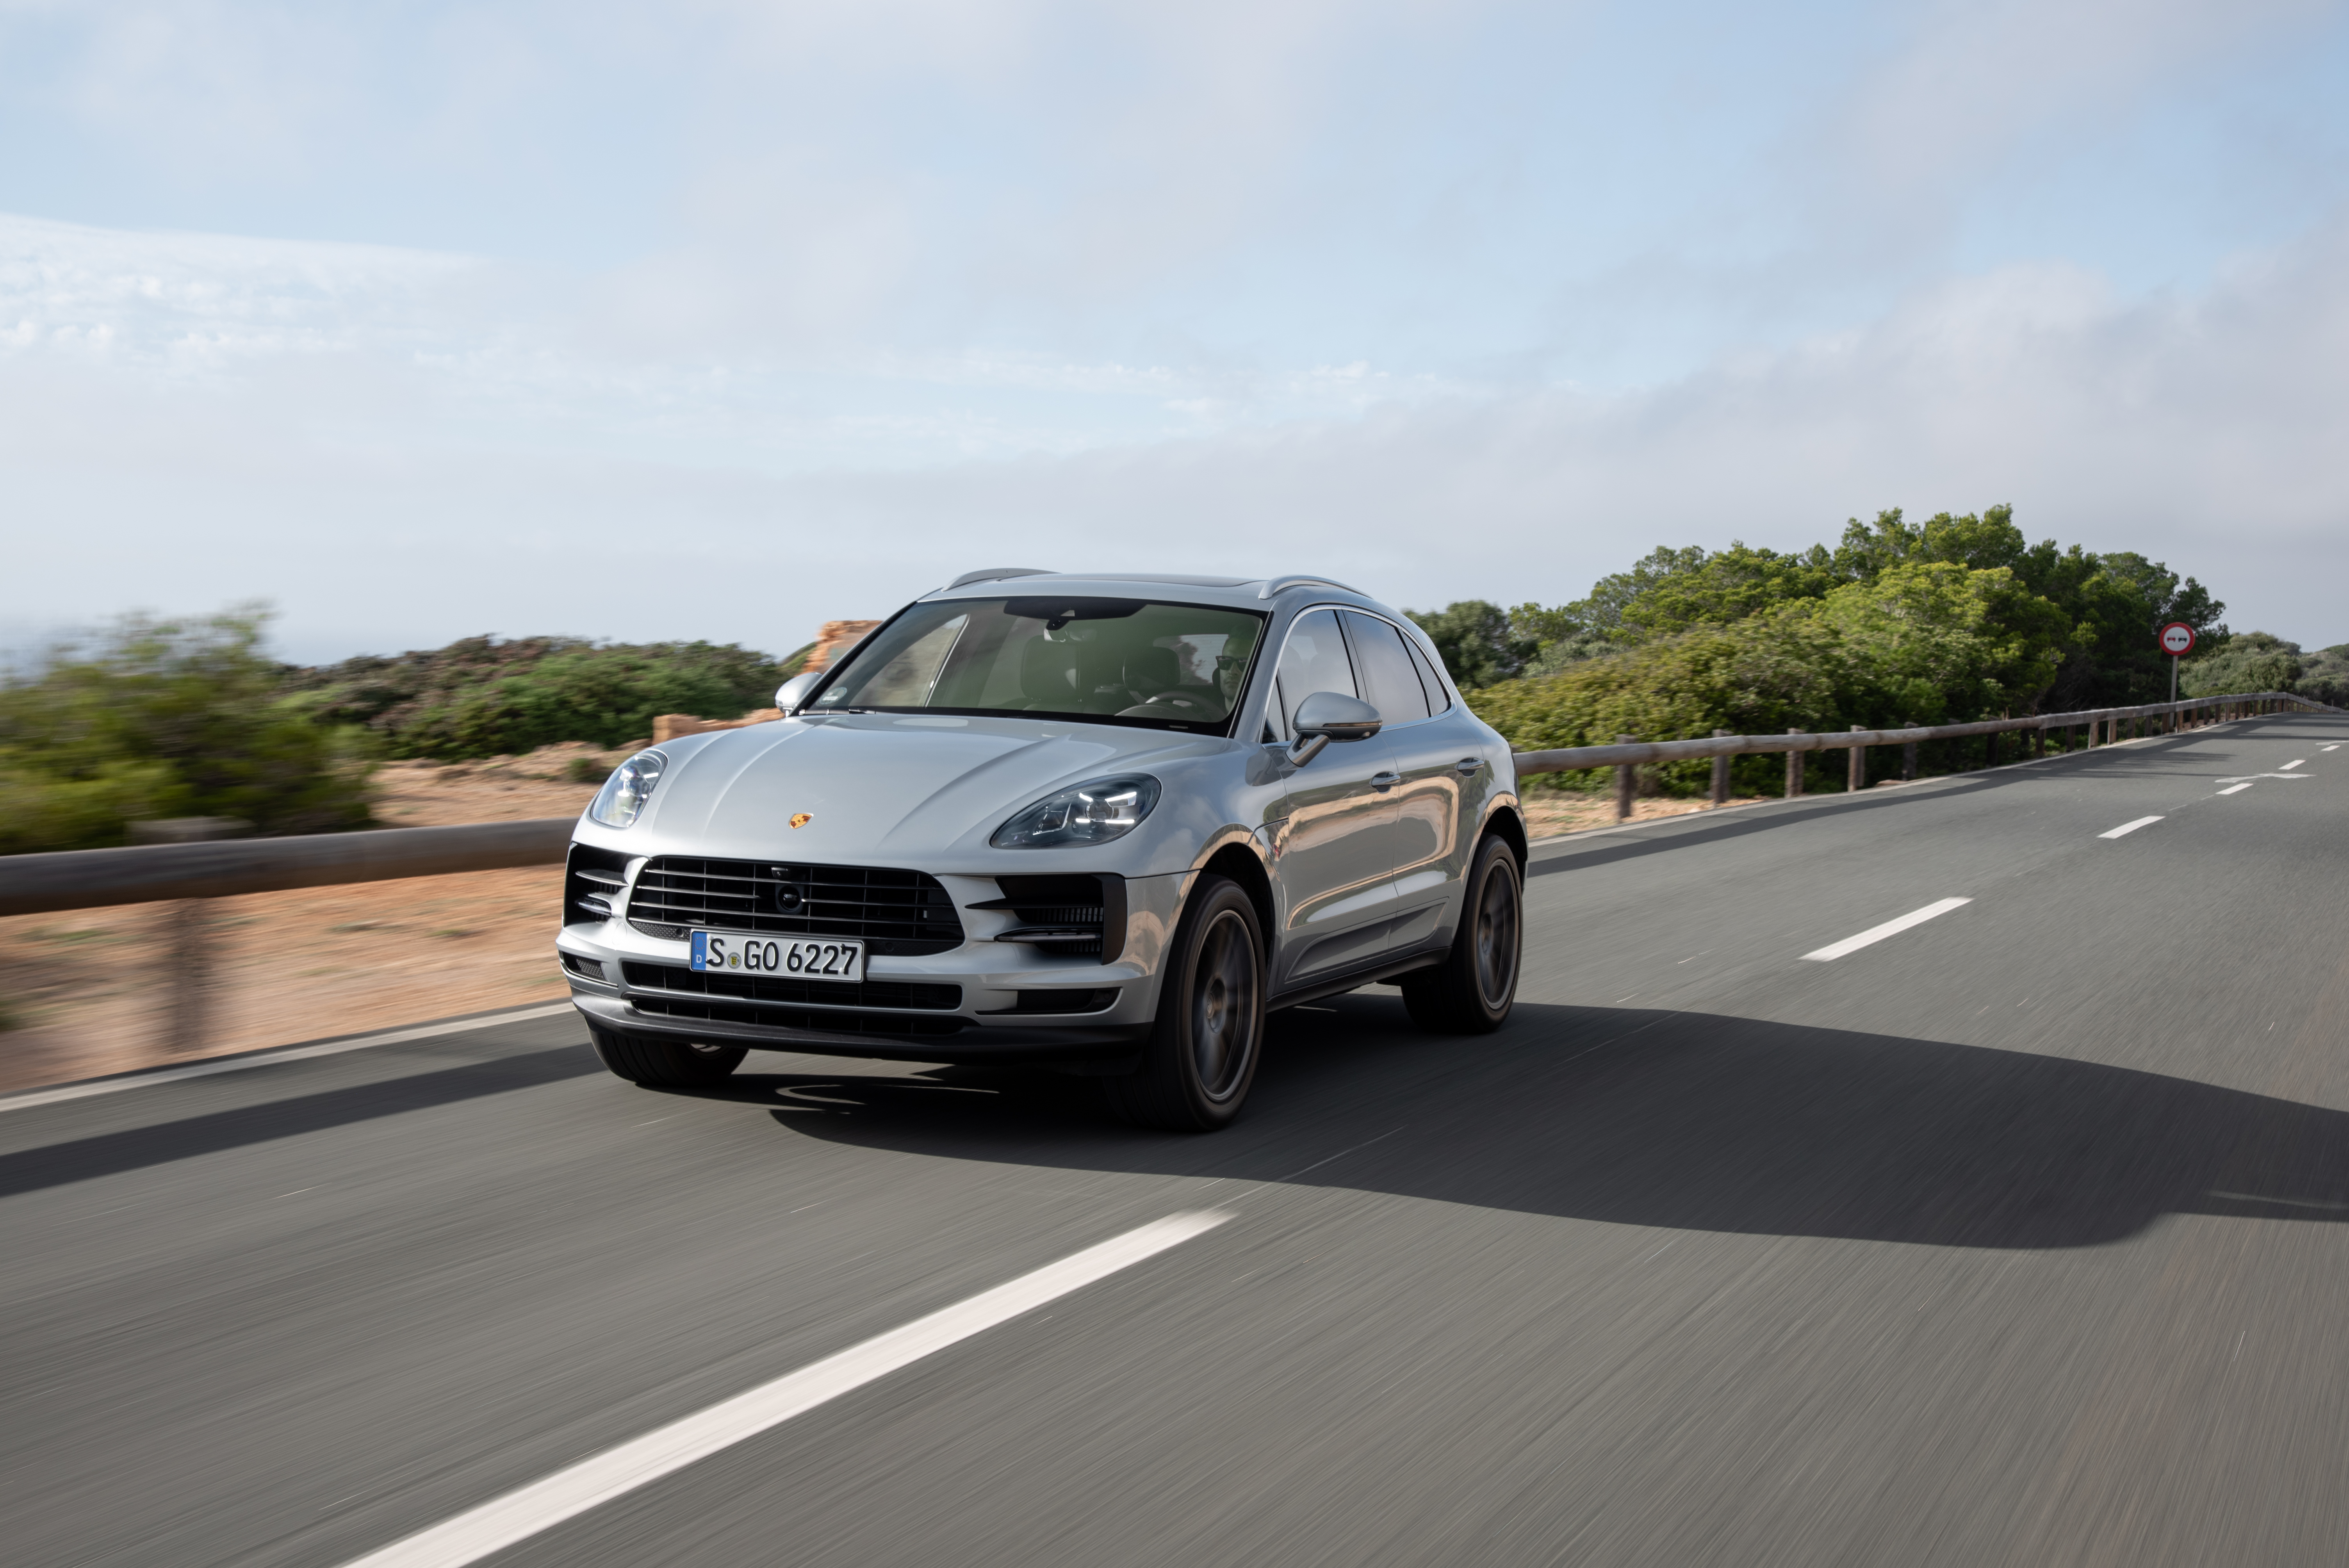 2019 Porsche Macan S 526043 Best Quality Free High Resolution Car